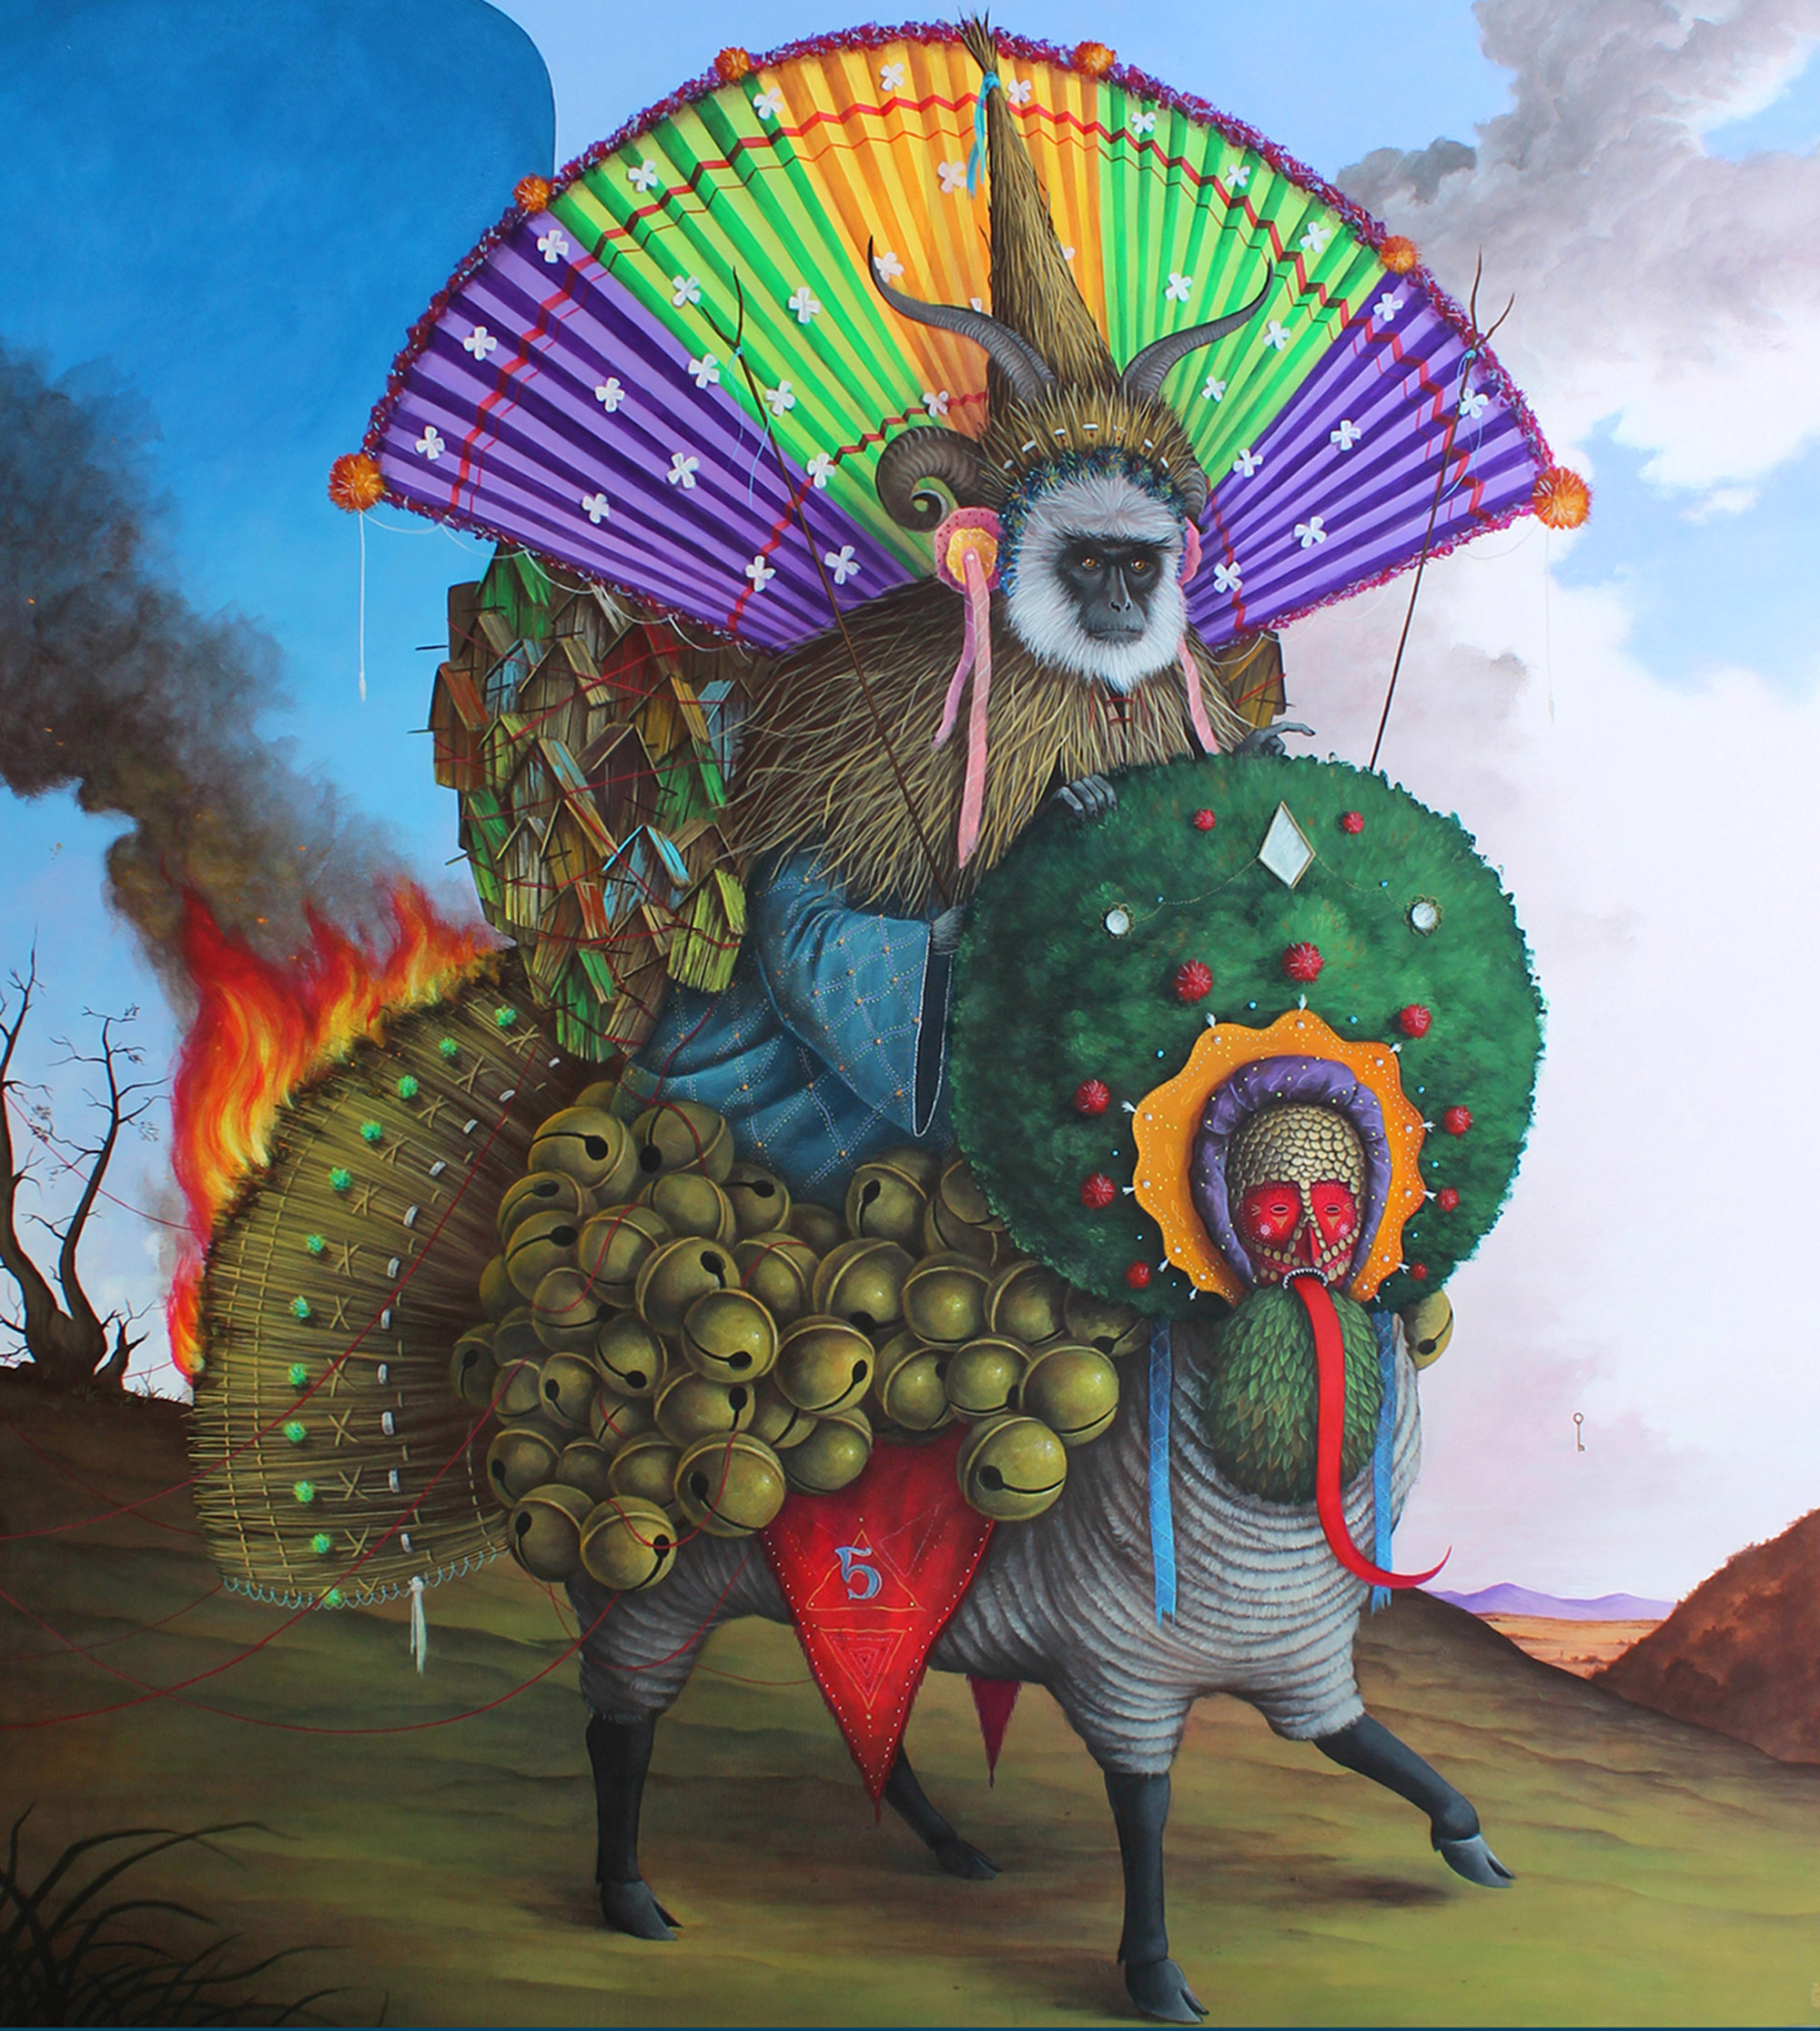 Modern Alchemy: Symbolic Paintings by El Gato Chimney